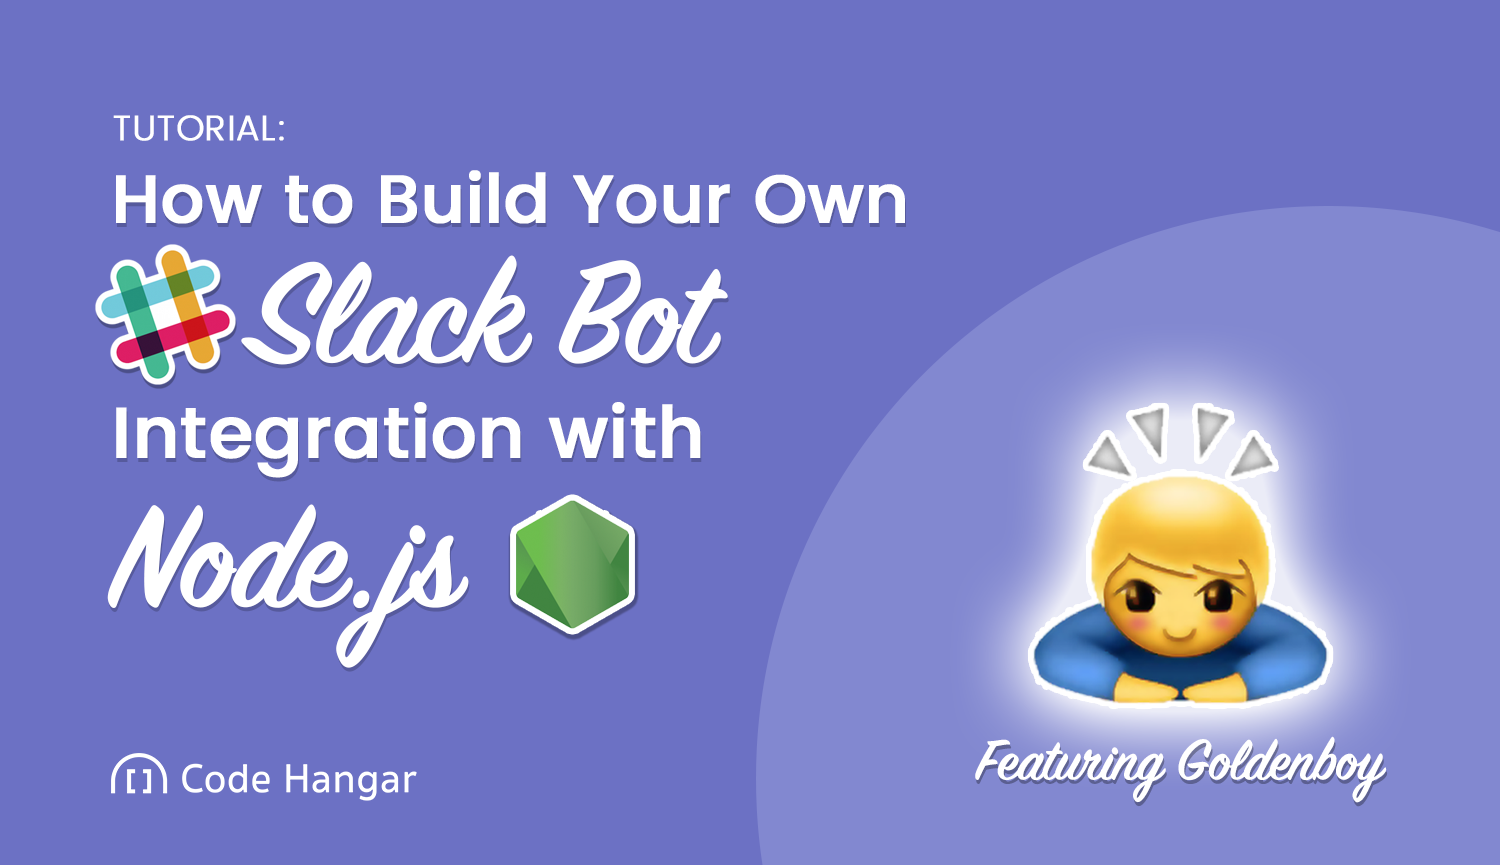 How To Build Your Own Slack Bot Integration With